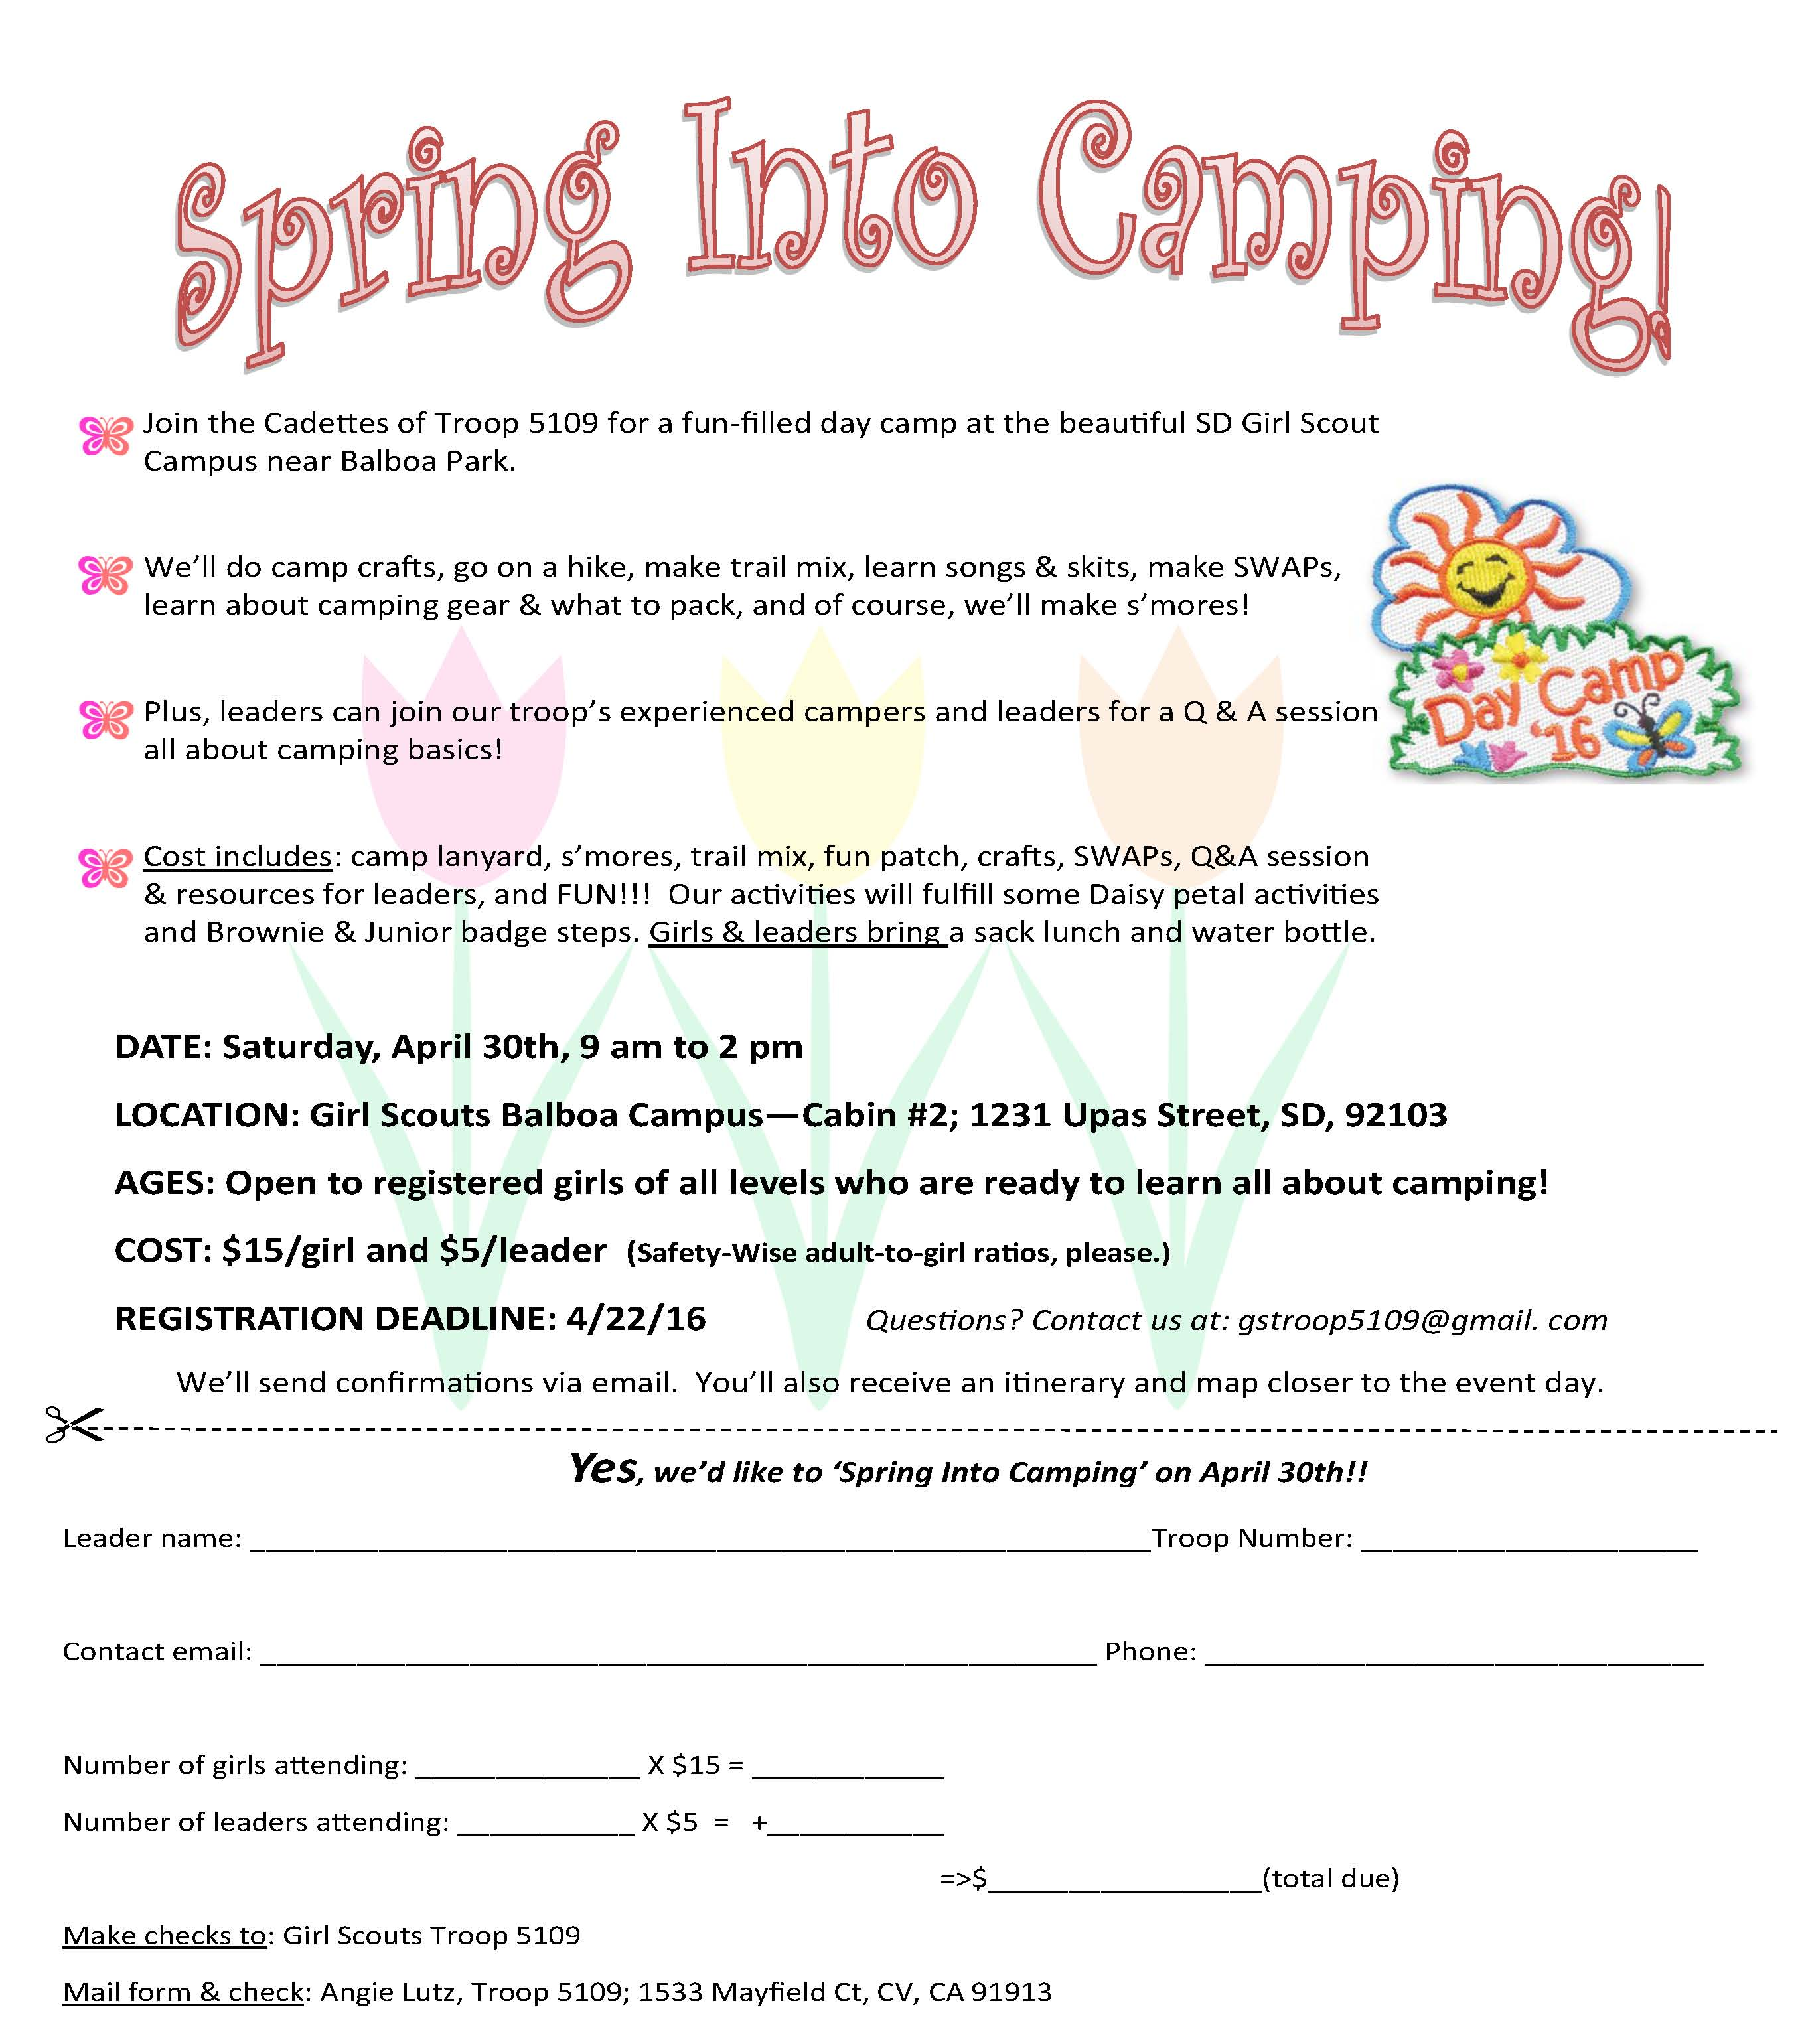 Spring into Camping [987387]